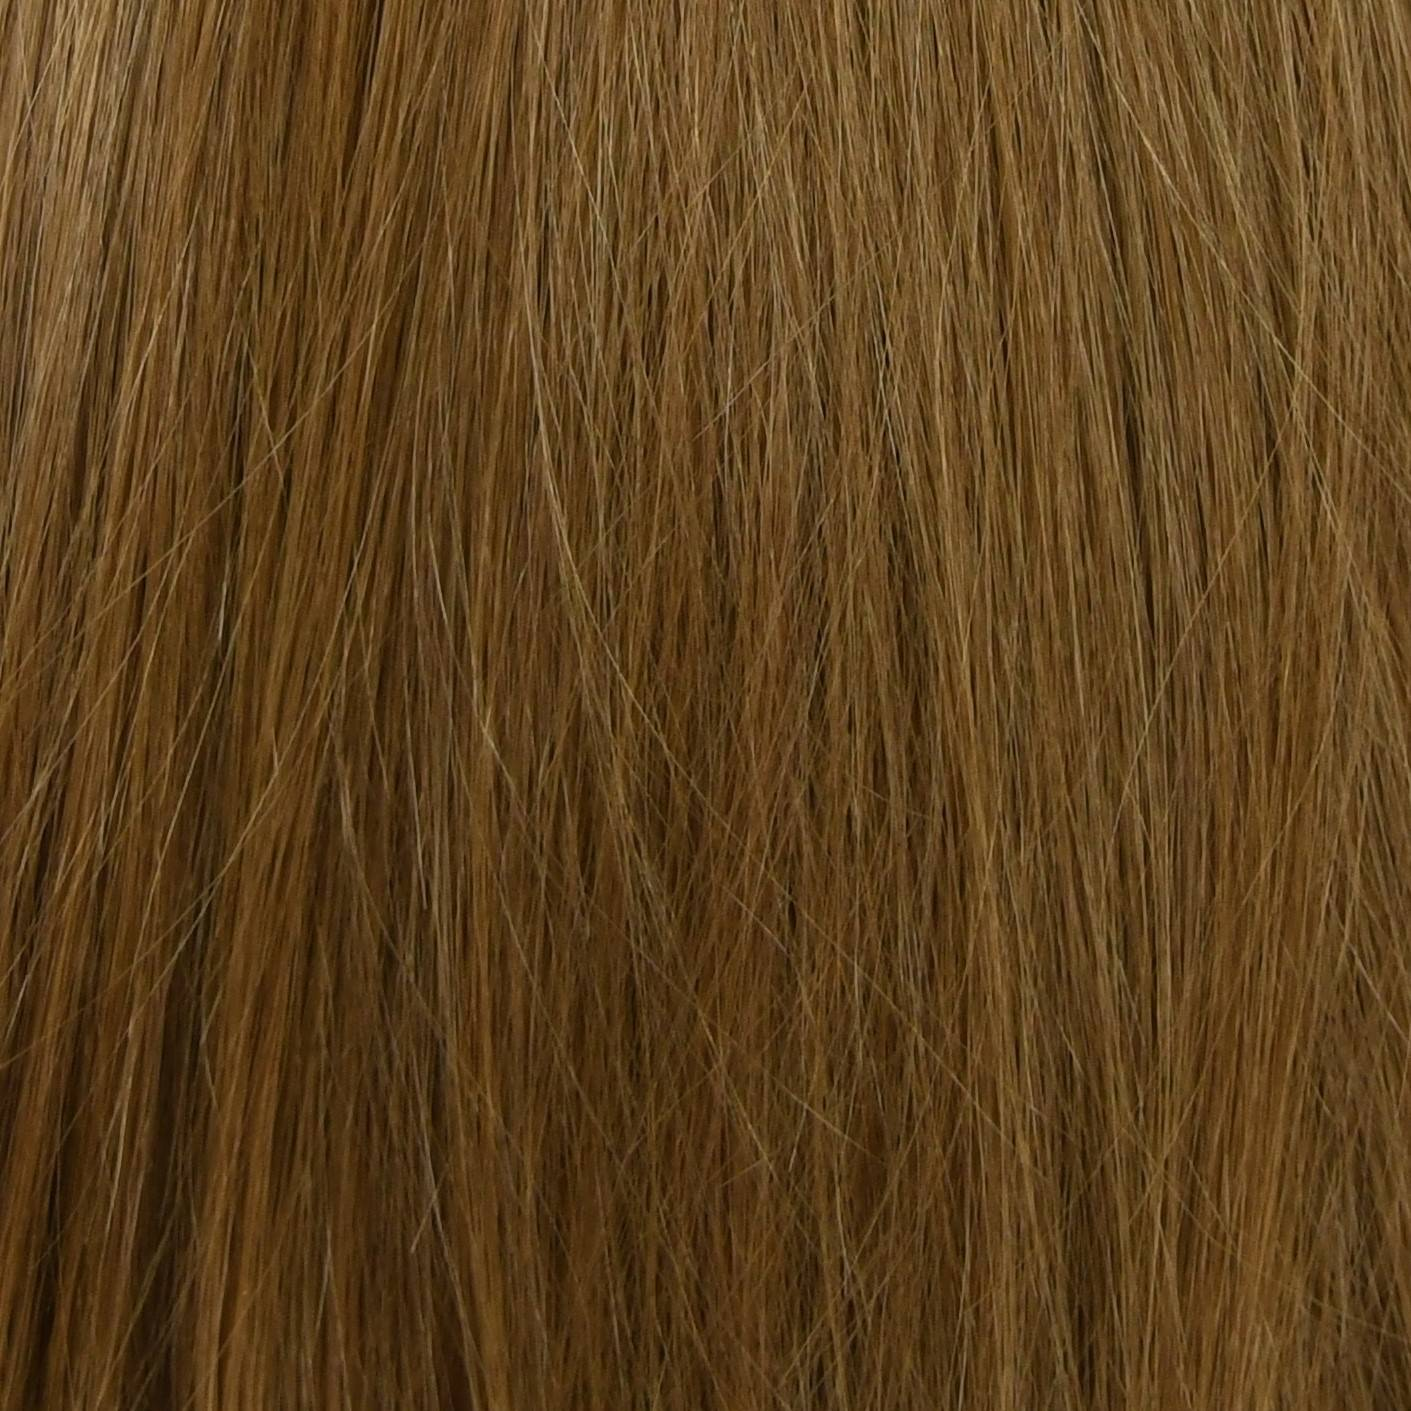 blend of dark brown and light brown hair extensions color sample in hair color chart